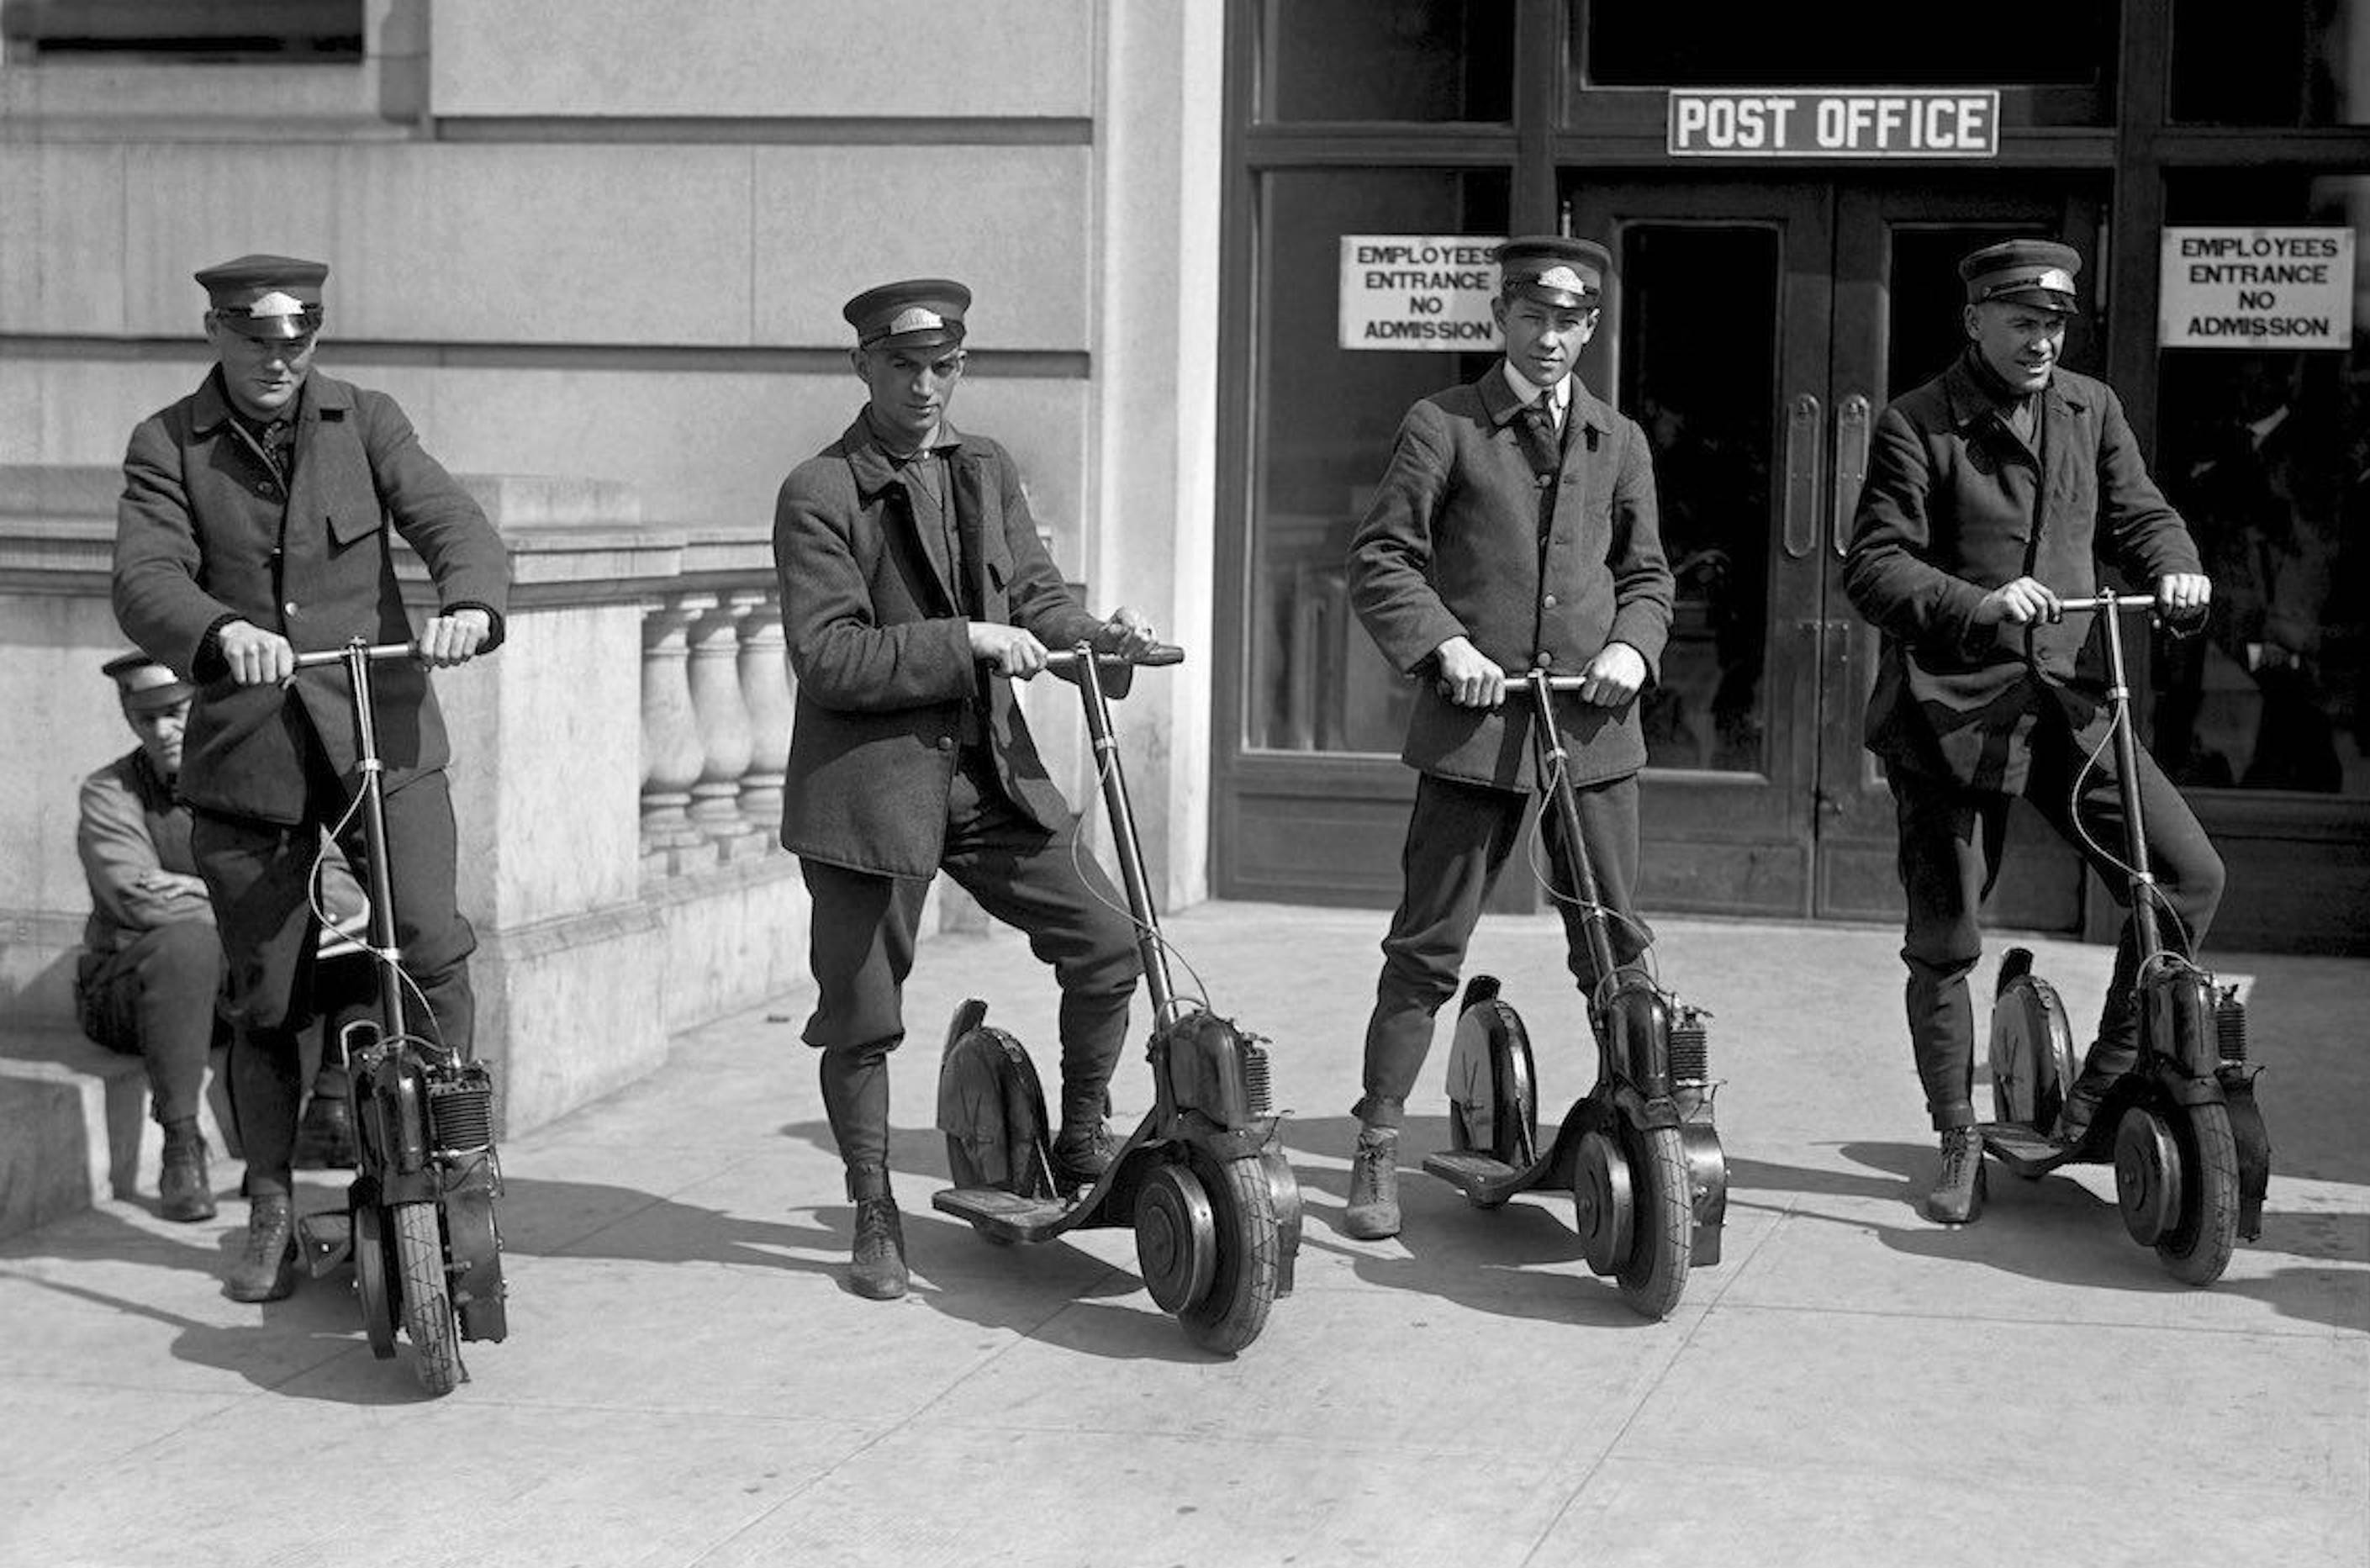 Four 20th Century postmen stand on their Autopeds, the electric scooters of their time.